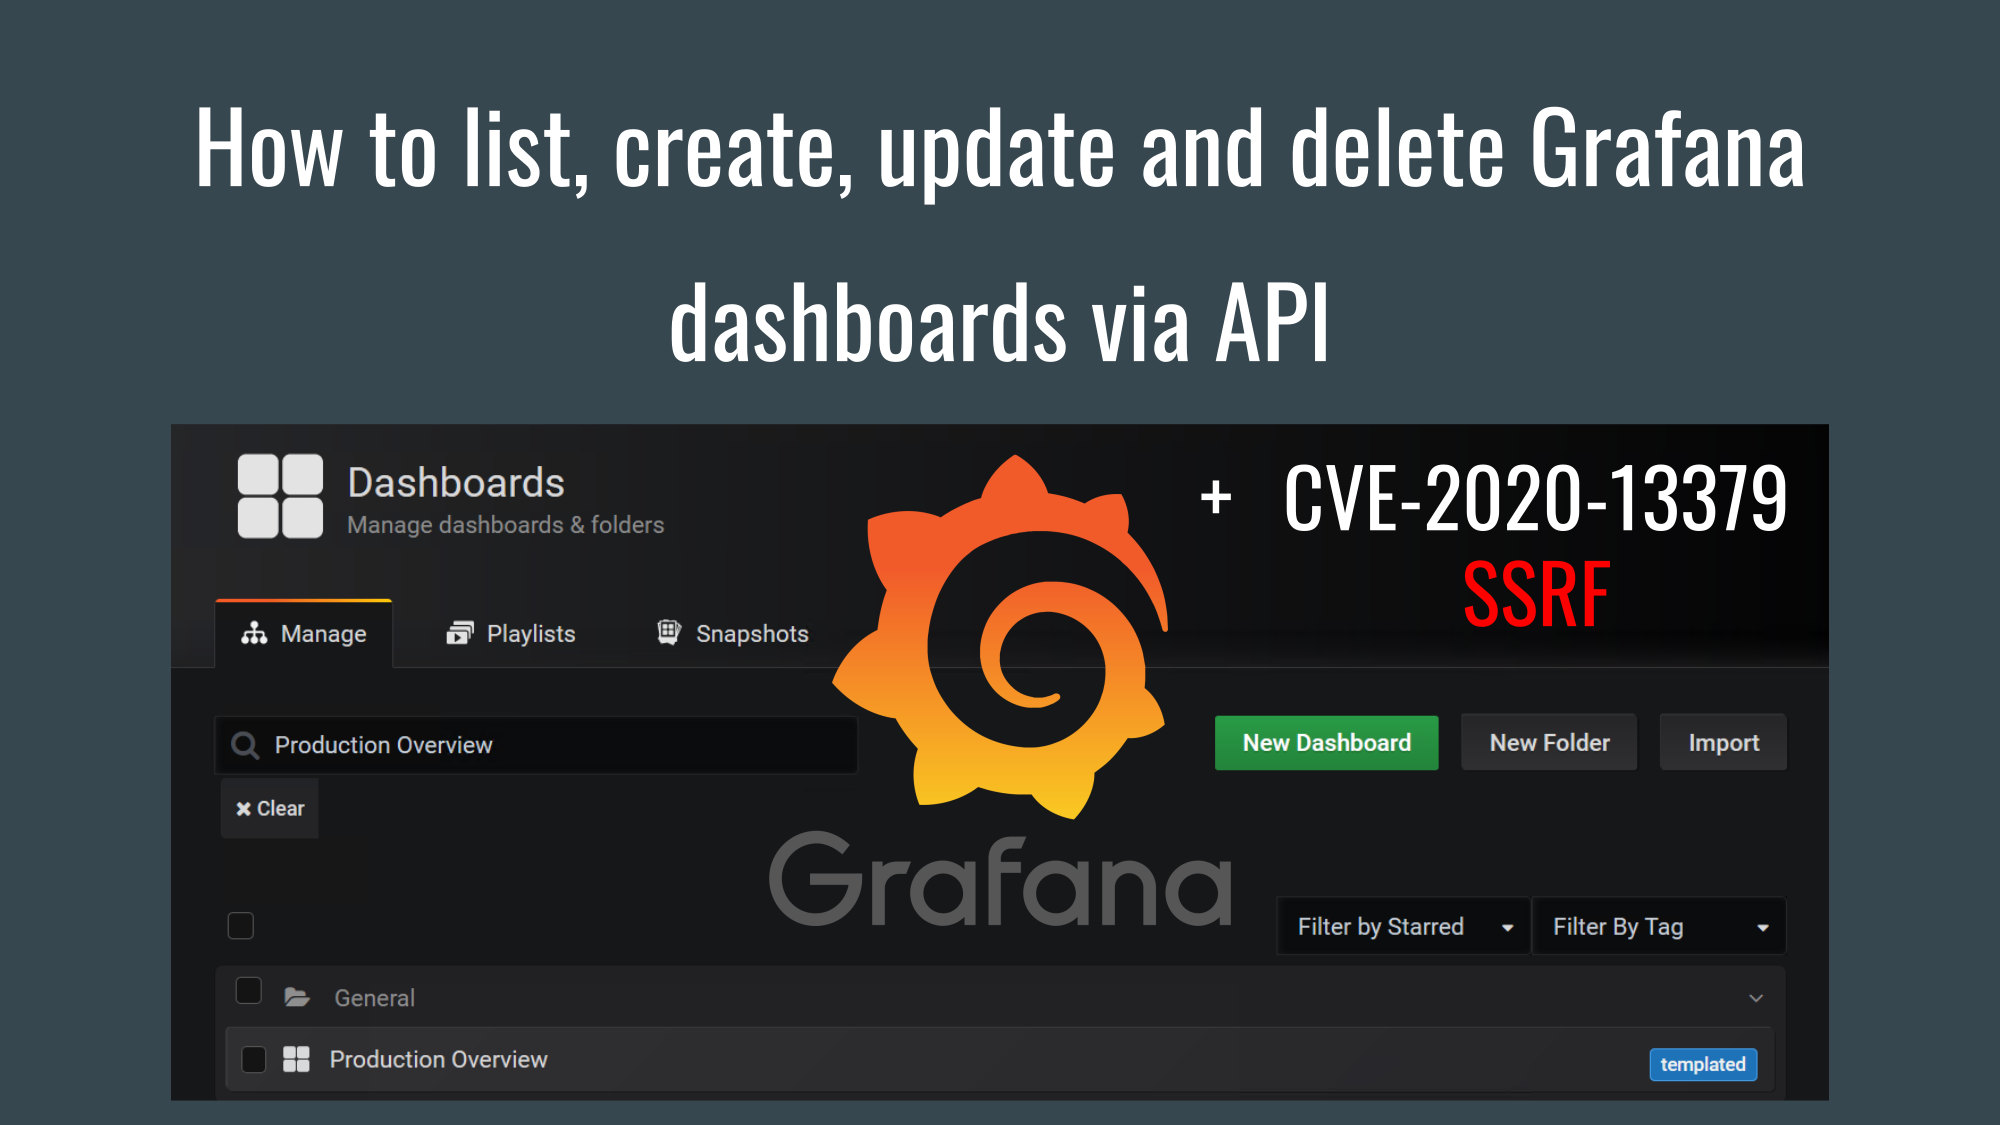 How to list, create, update and delete Grafana dashboards via API